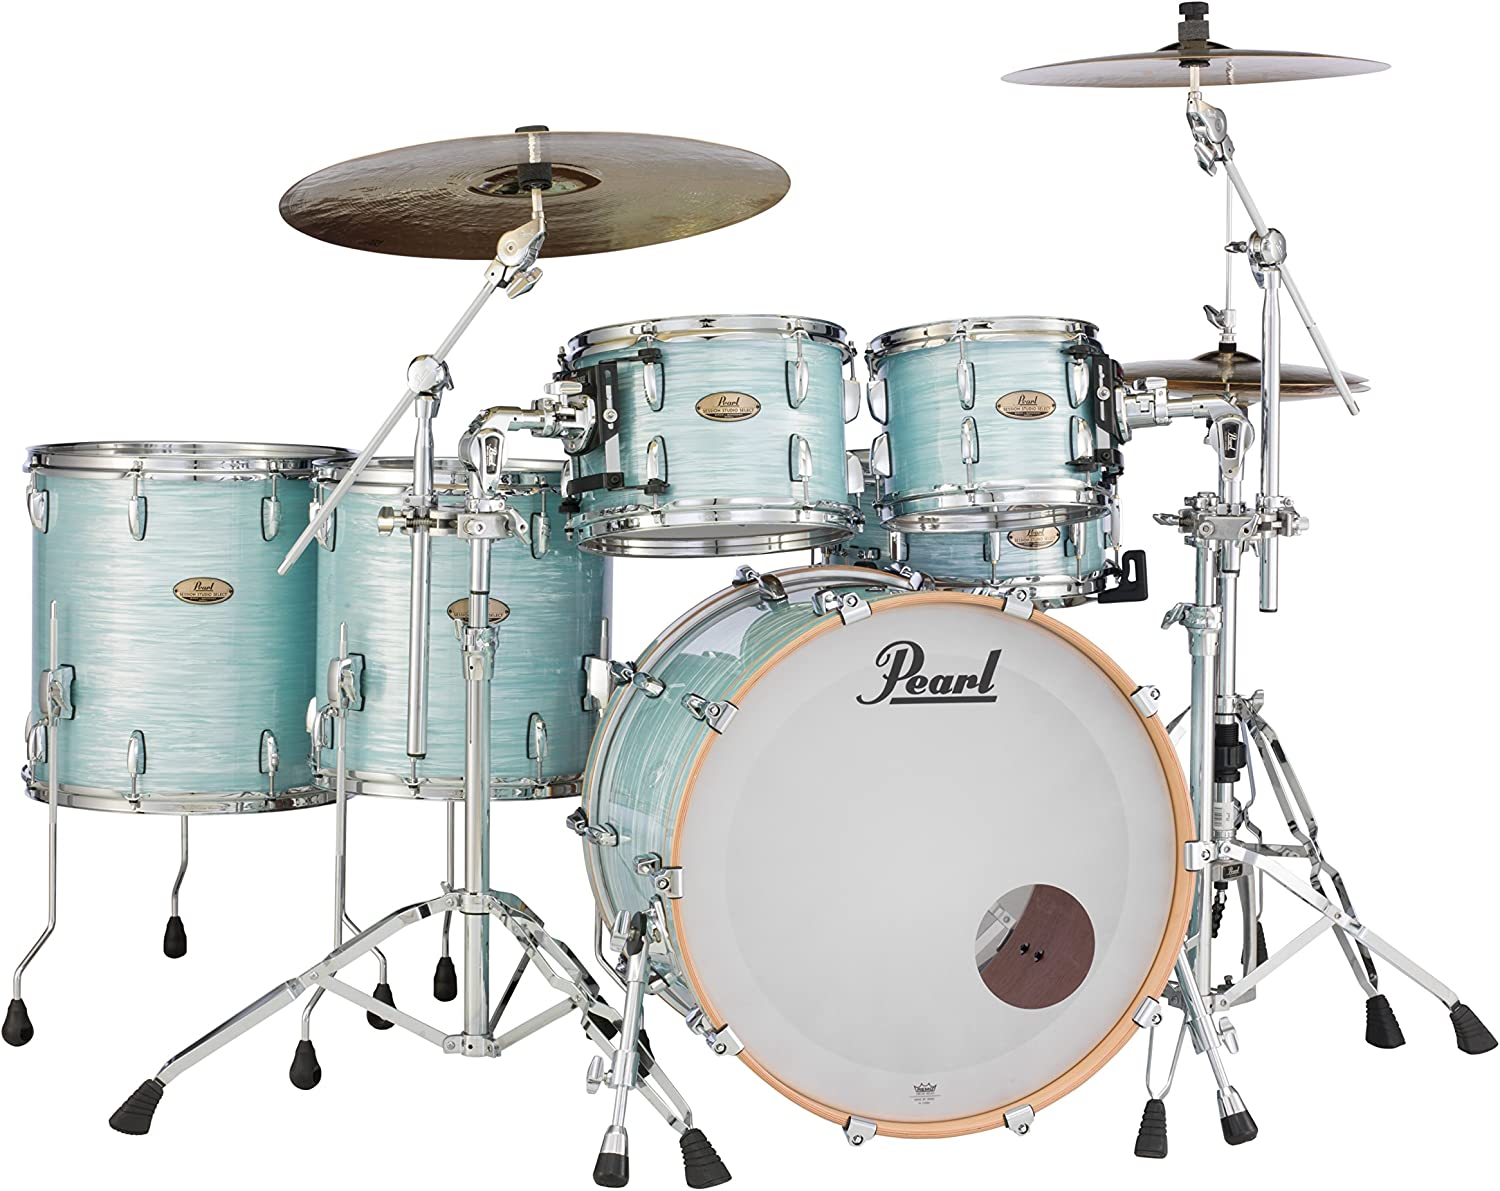 Ice Blue Oyster STS925XSP//C414 Pearl Session Studio Select Series 5-piece shell pack hardware//cymbals not included